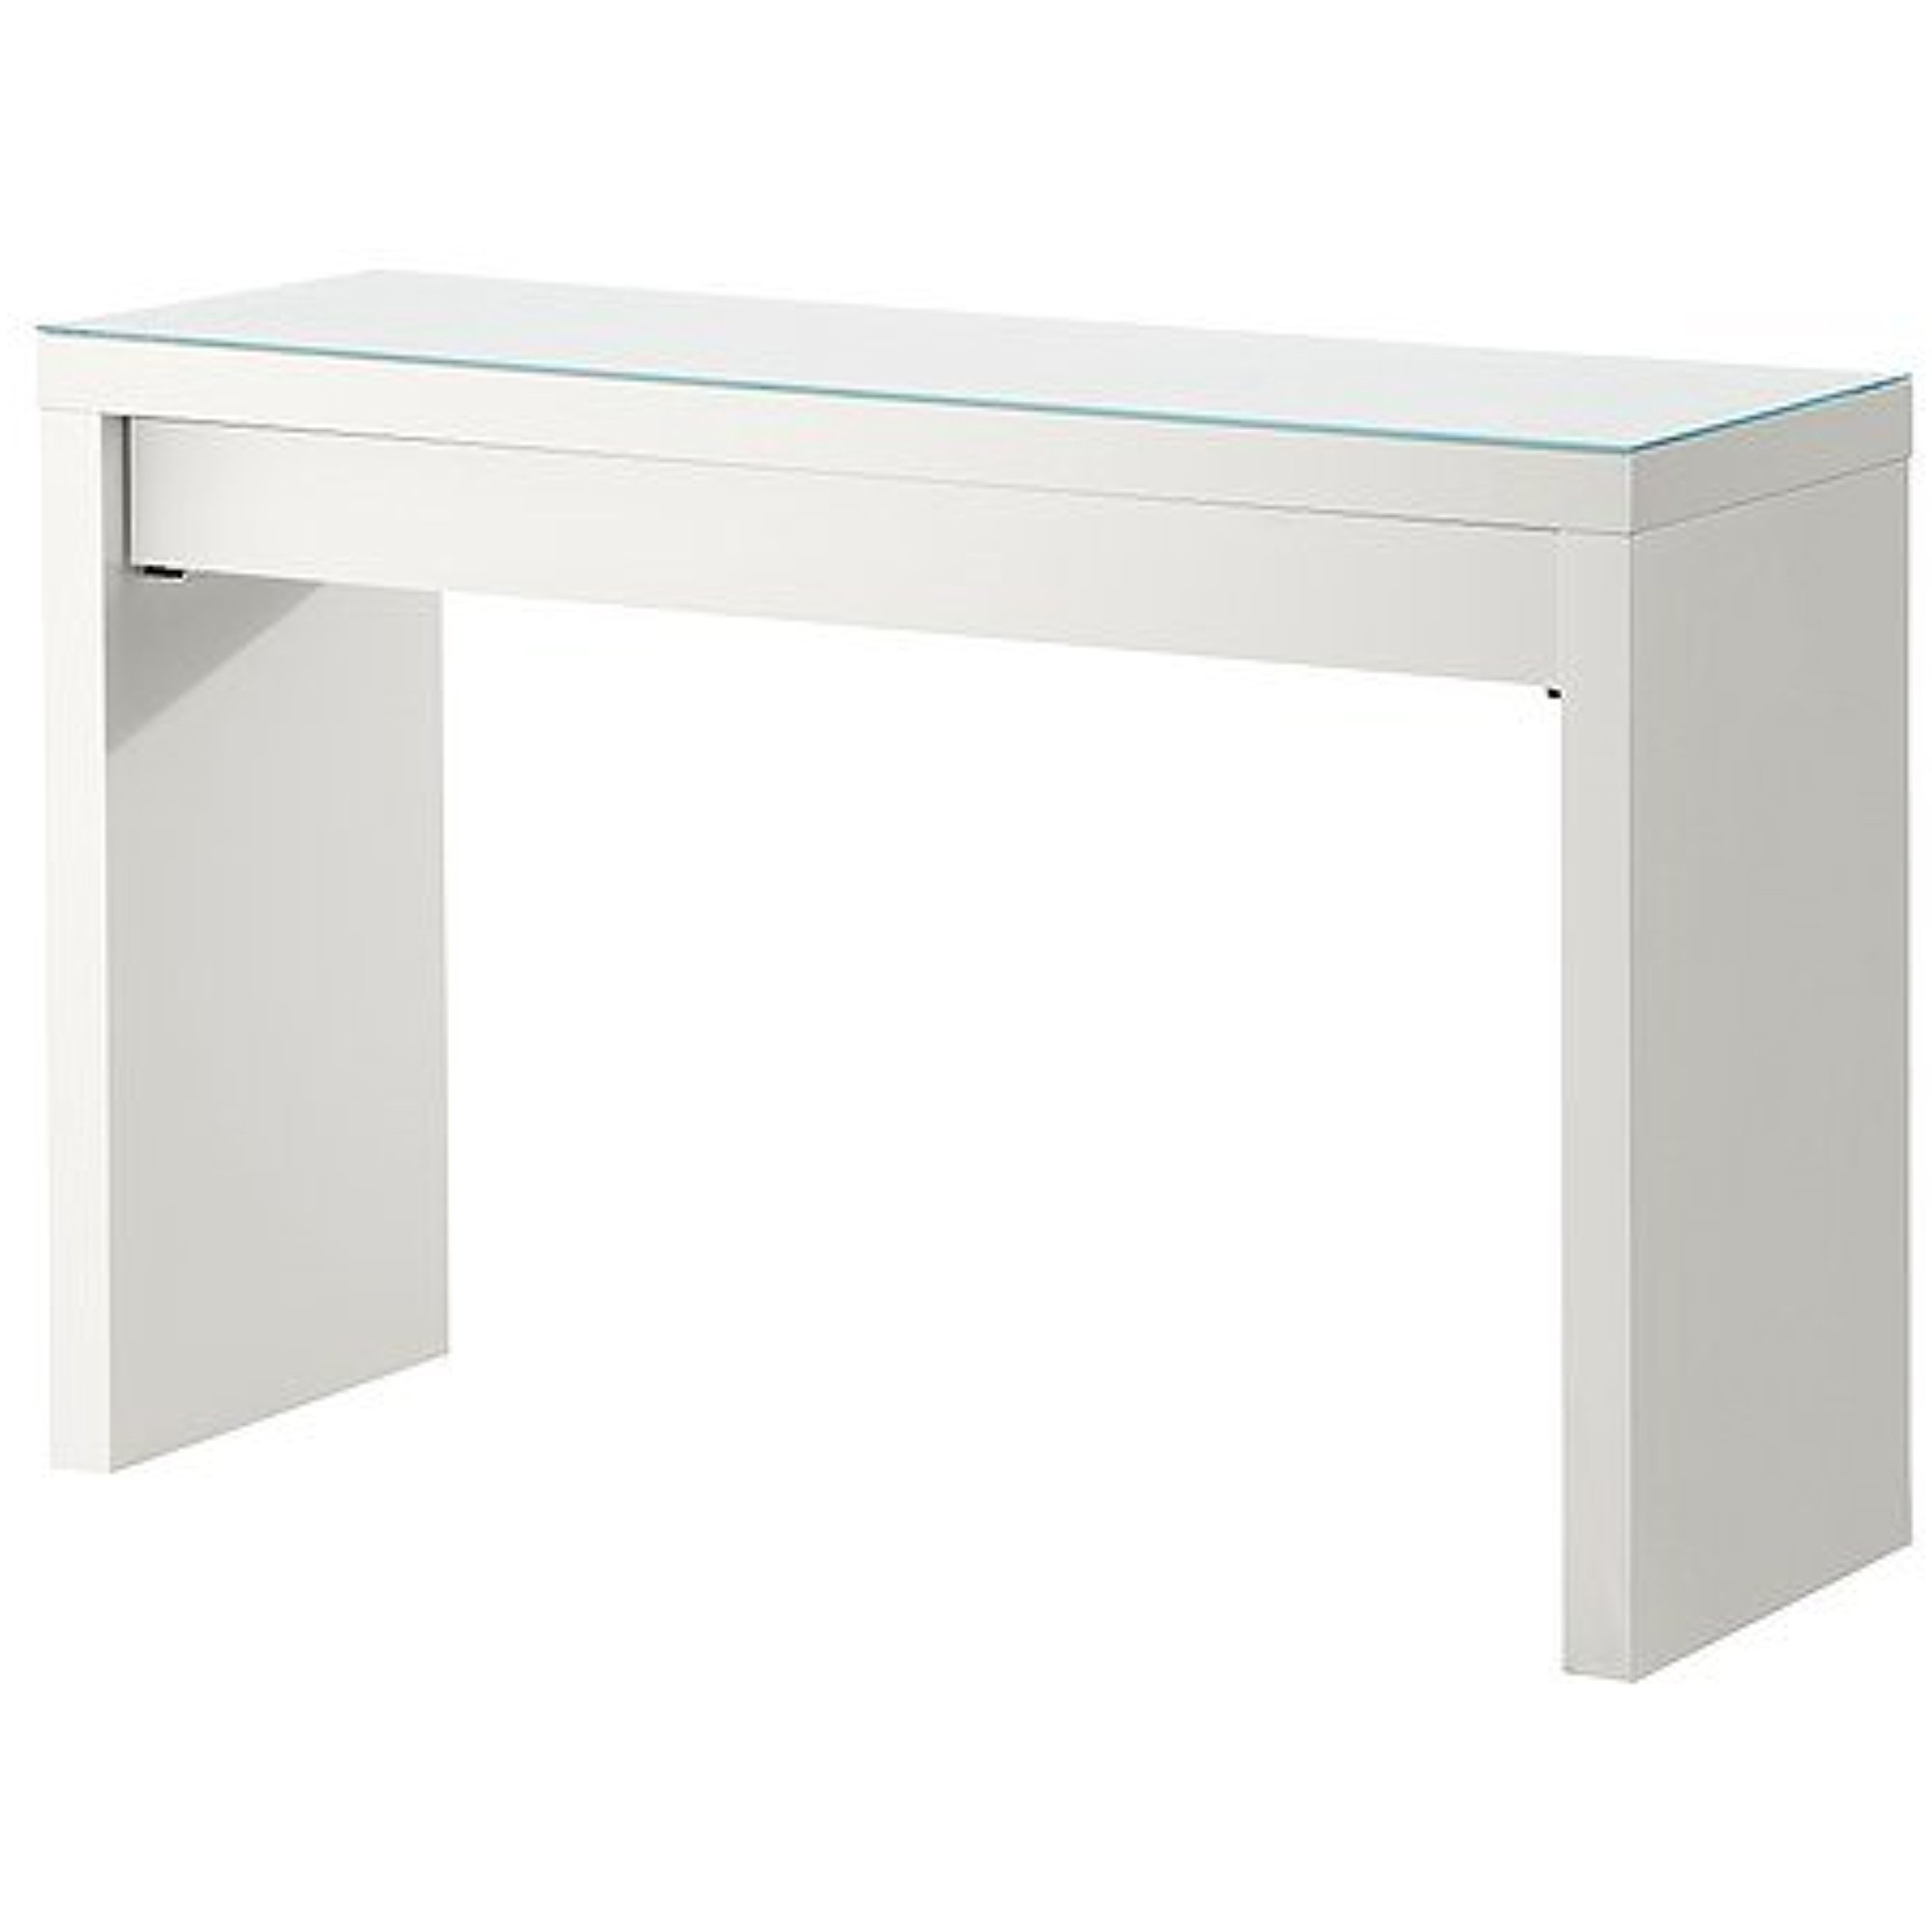 Ikea Dressing Table, White, 47 1/4 X 16 1/8 X 30 3/4, Depth Of Drawer: 13 3/8, Malm 6210.21120.42 by Ikea